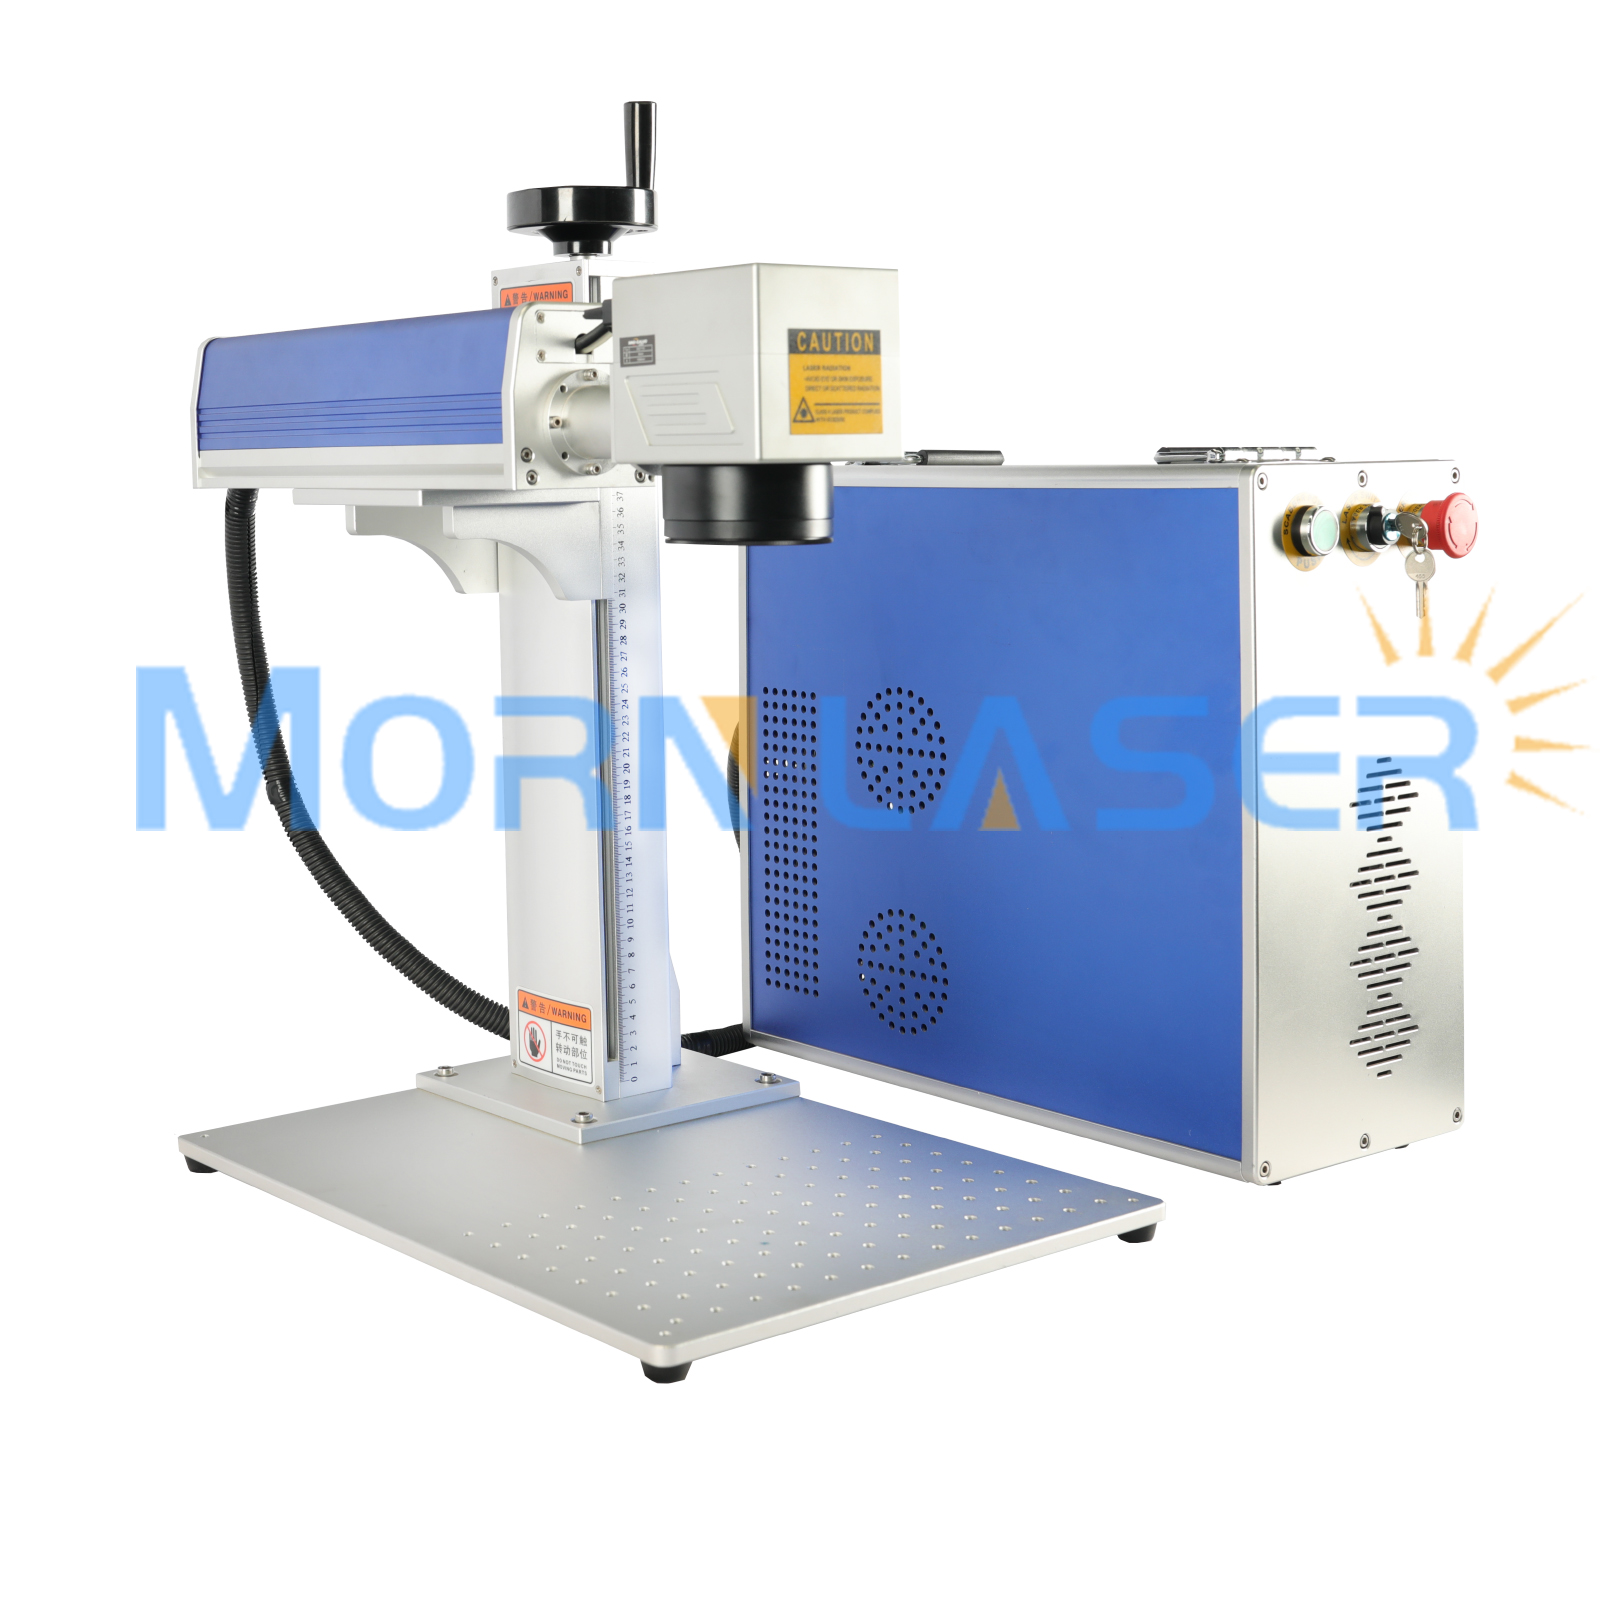 Laser Marker 30 W Raycus High Quality Metal Plastic Marker Machine For Industrial Products